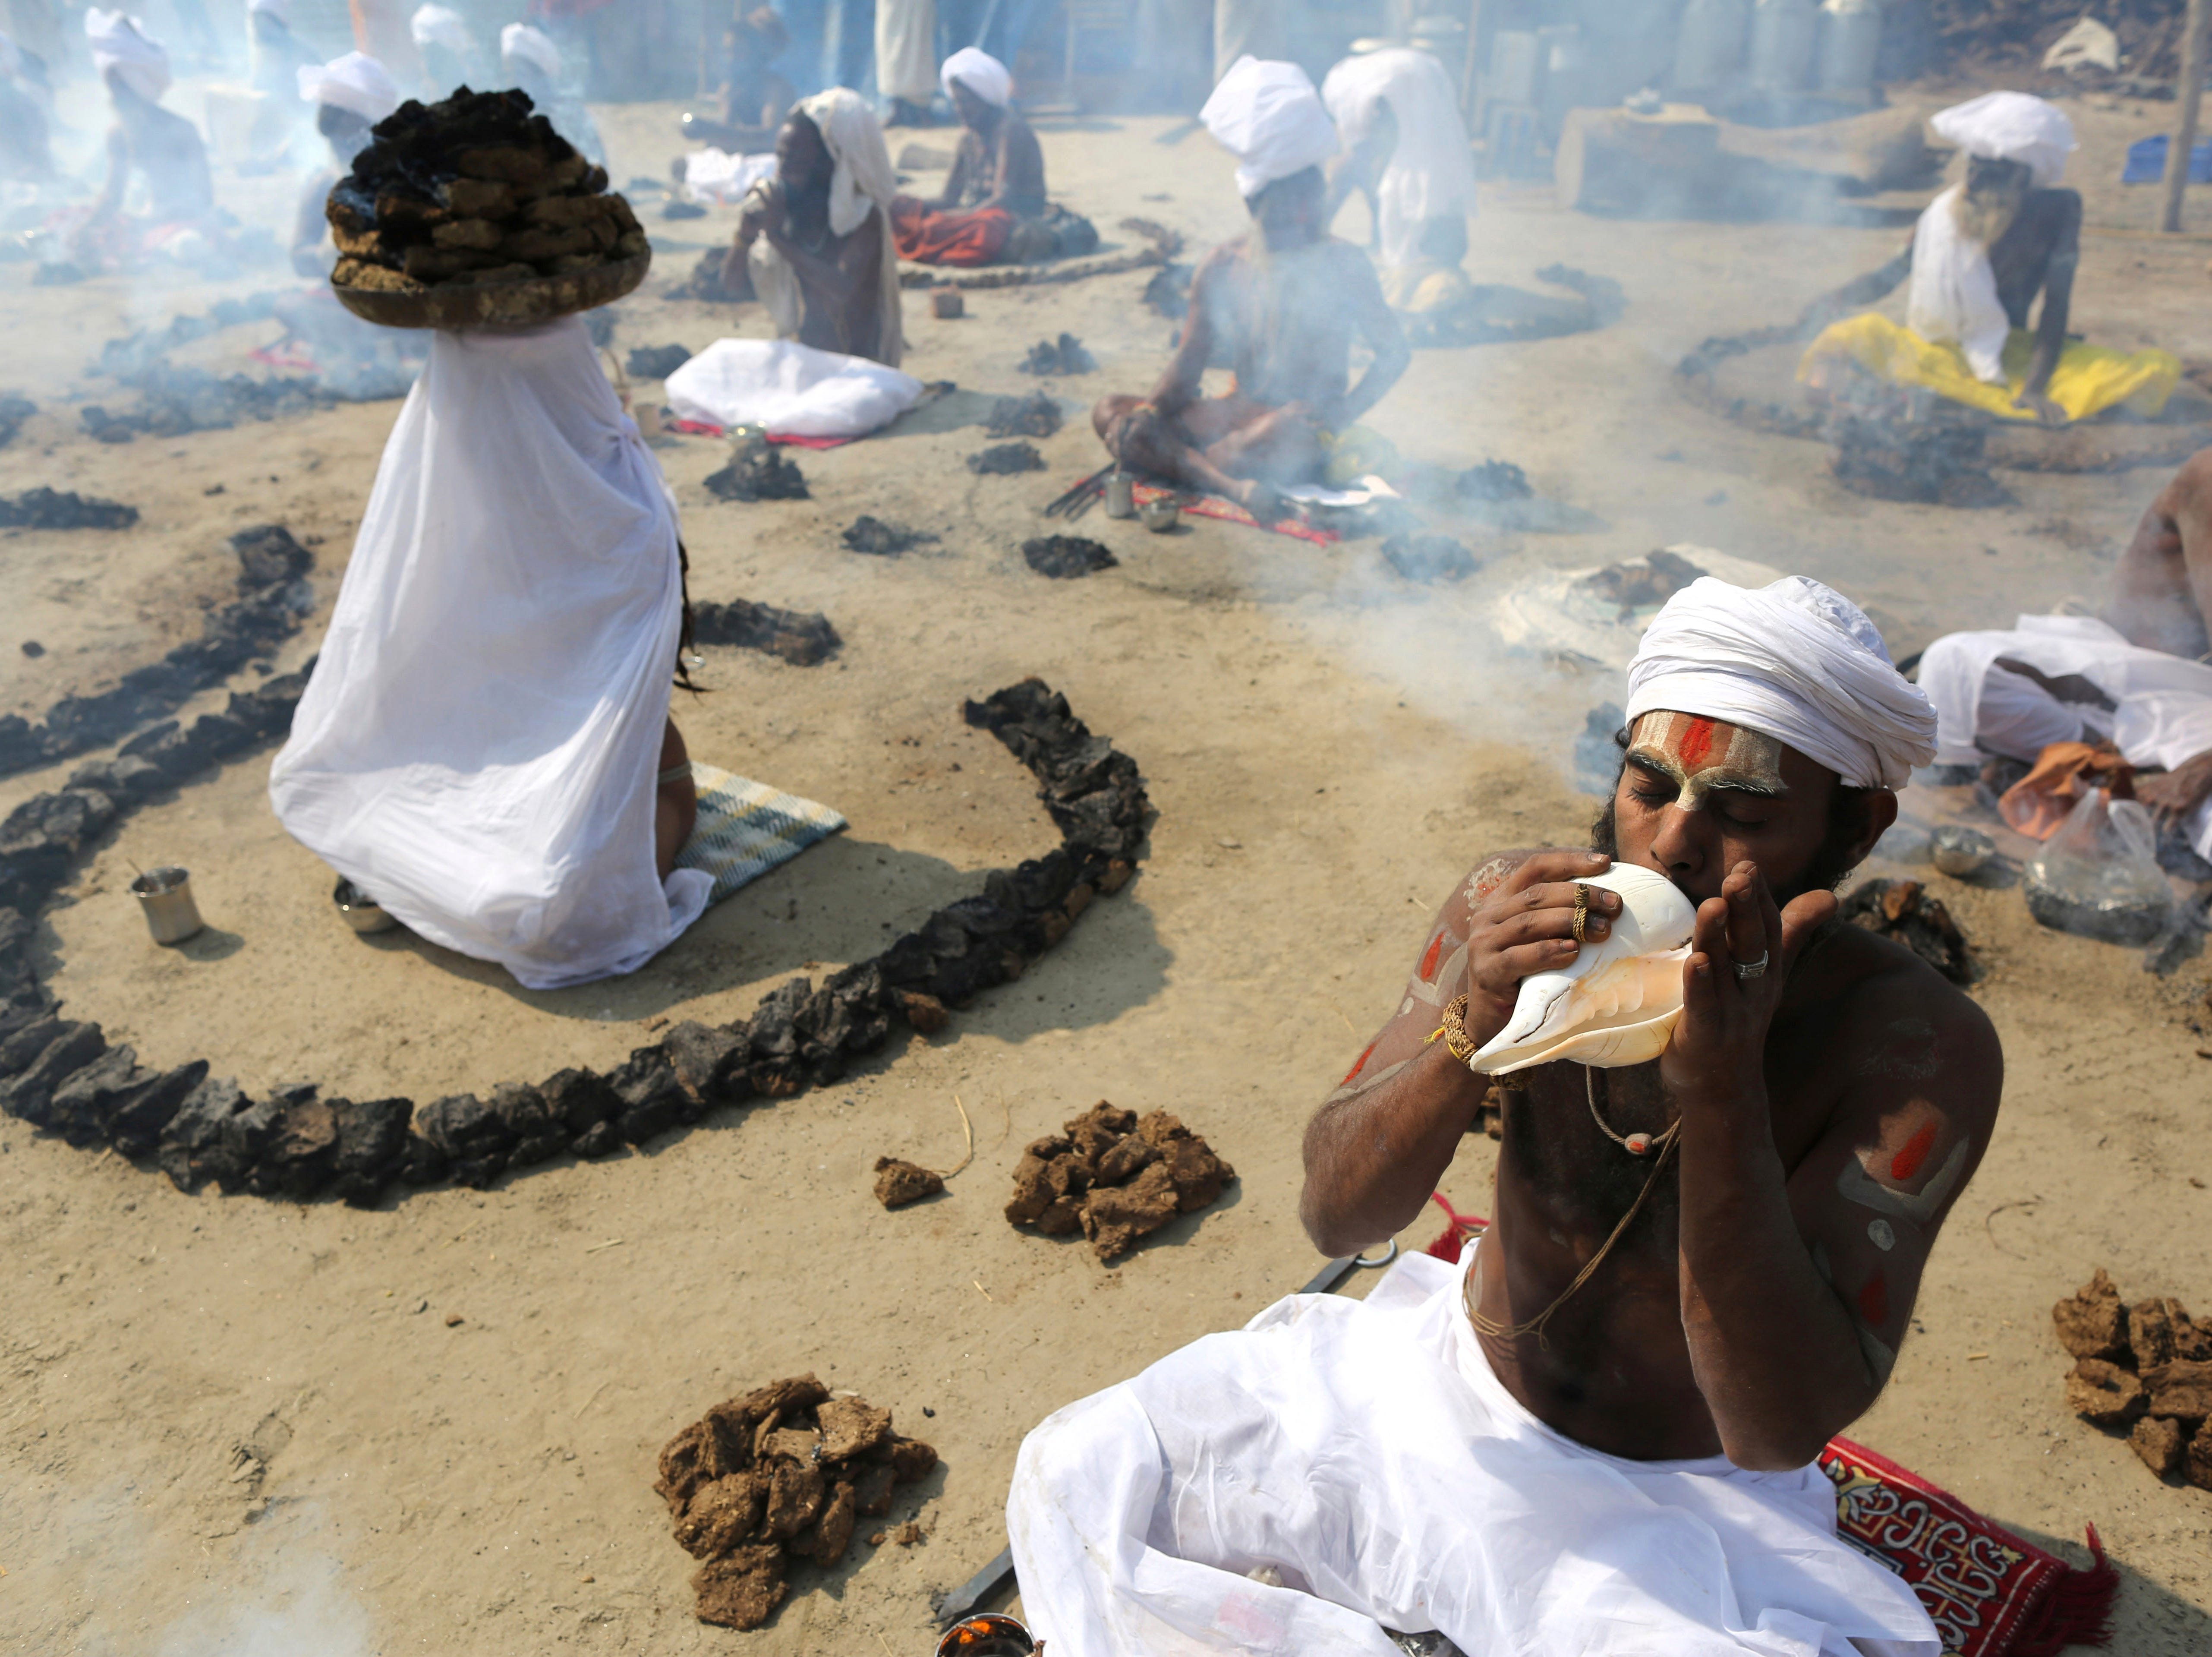 Hindu holy men perform rituals after holy dip on the auspicious day of Basant Panchami at Sangam, the confluence of sacred rivers the Yamuna, the Ganges and the mythical Saraswati, during the Kumbh Mela or the Pitcher Festival, in Prayagraj, Uttar Pradesh state, India, Sunday, Feb. 10, 2019. The Kumbh Mela is a series of ritual baths by Hindu sadhus, or holy men, and other pilgrims at Sangam that dates back to at least medieval times. Pilgrims bathe in the river believing it cleanses them of their sins and ends their process of reincarnation.